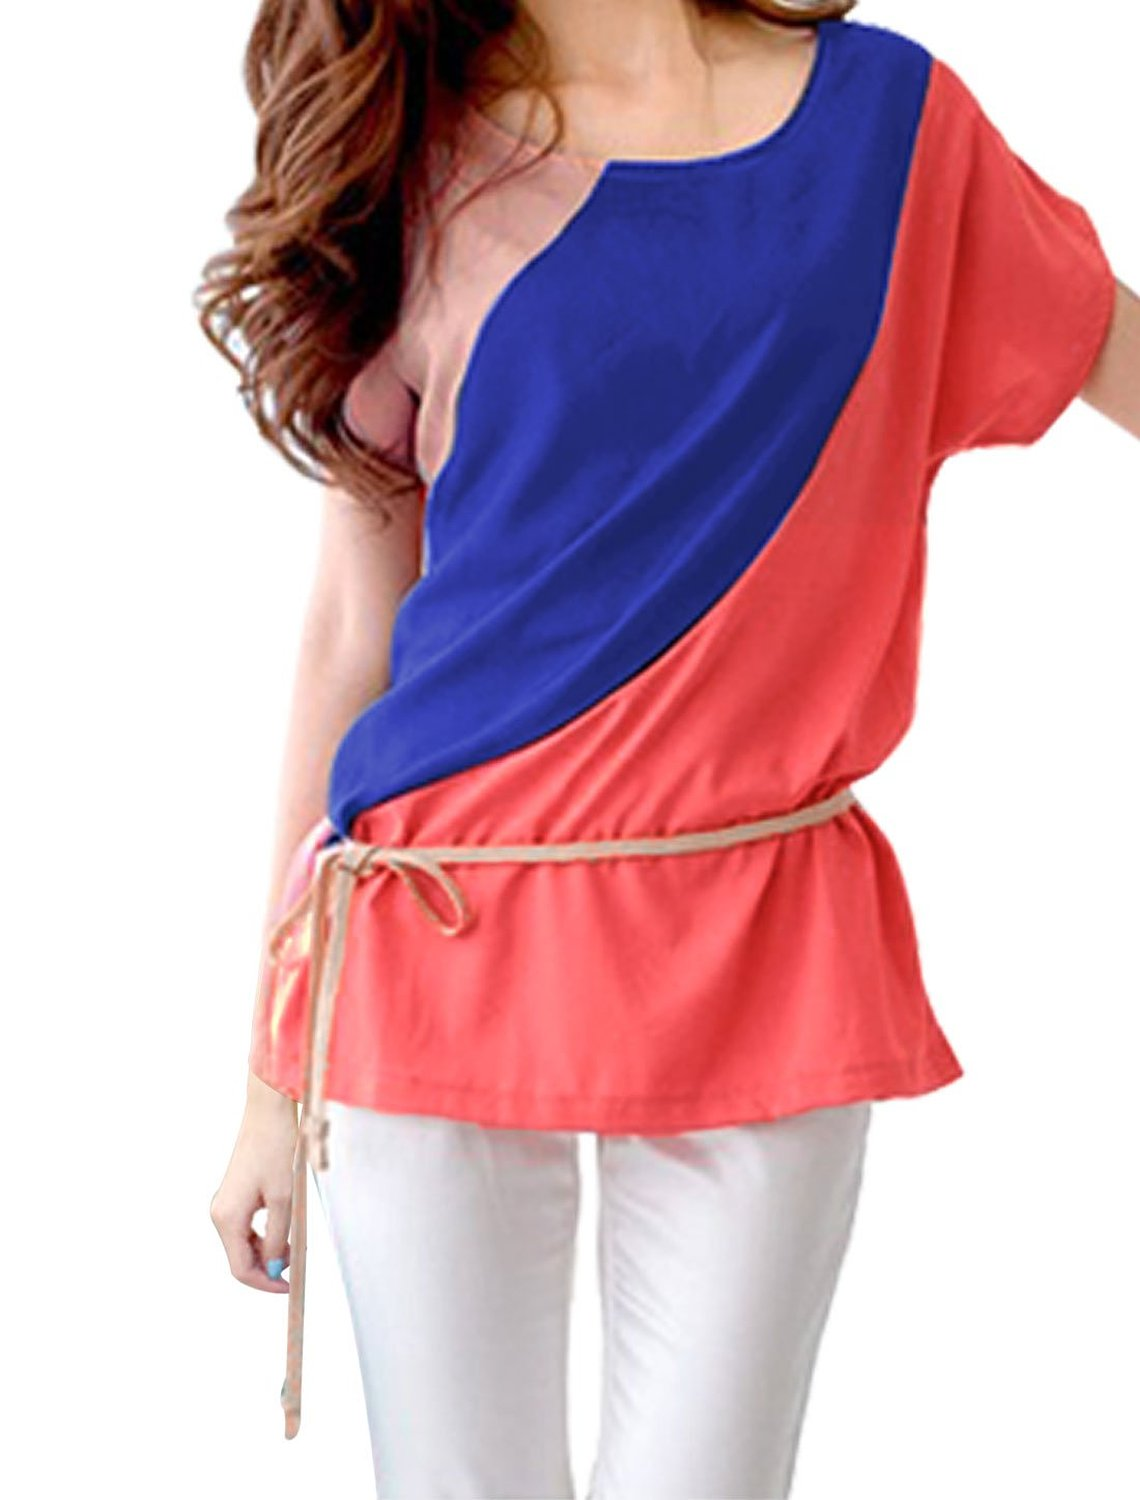 Allegra K Women Short Sleeve Color Block Tunic Tops T-Shirts w Waist Strap at Amazon Women's Clothing store